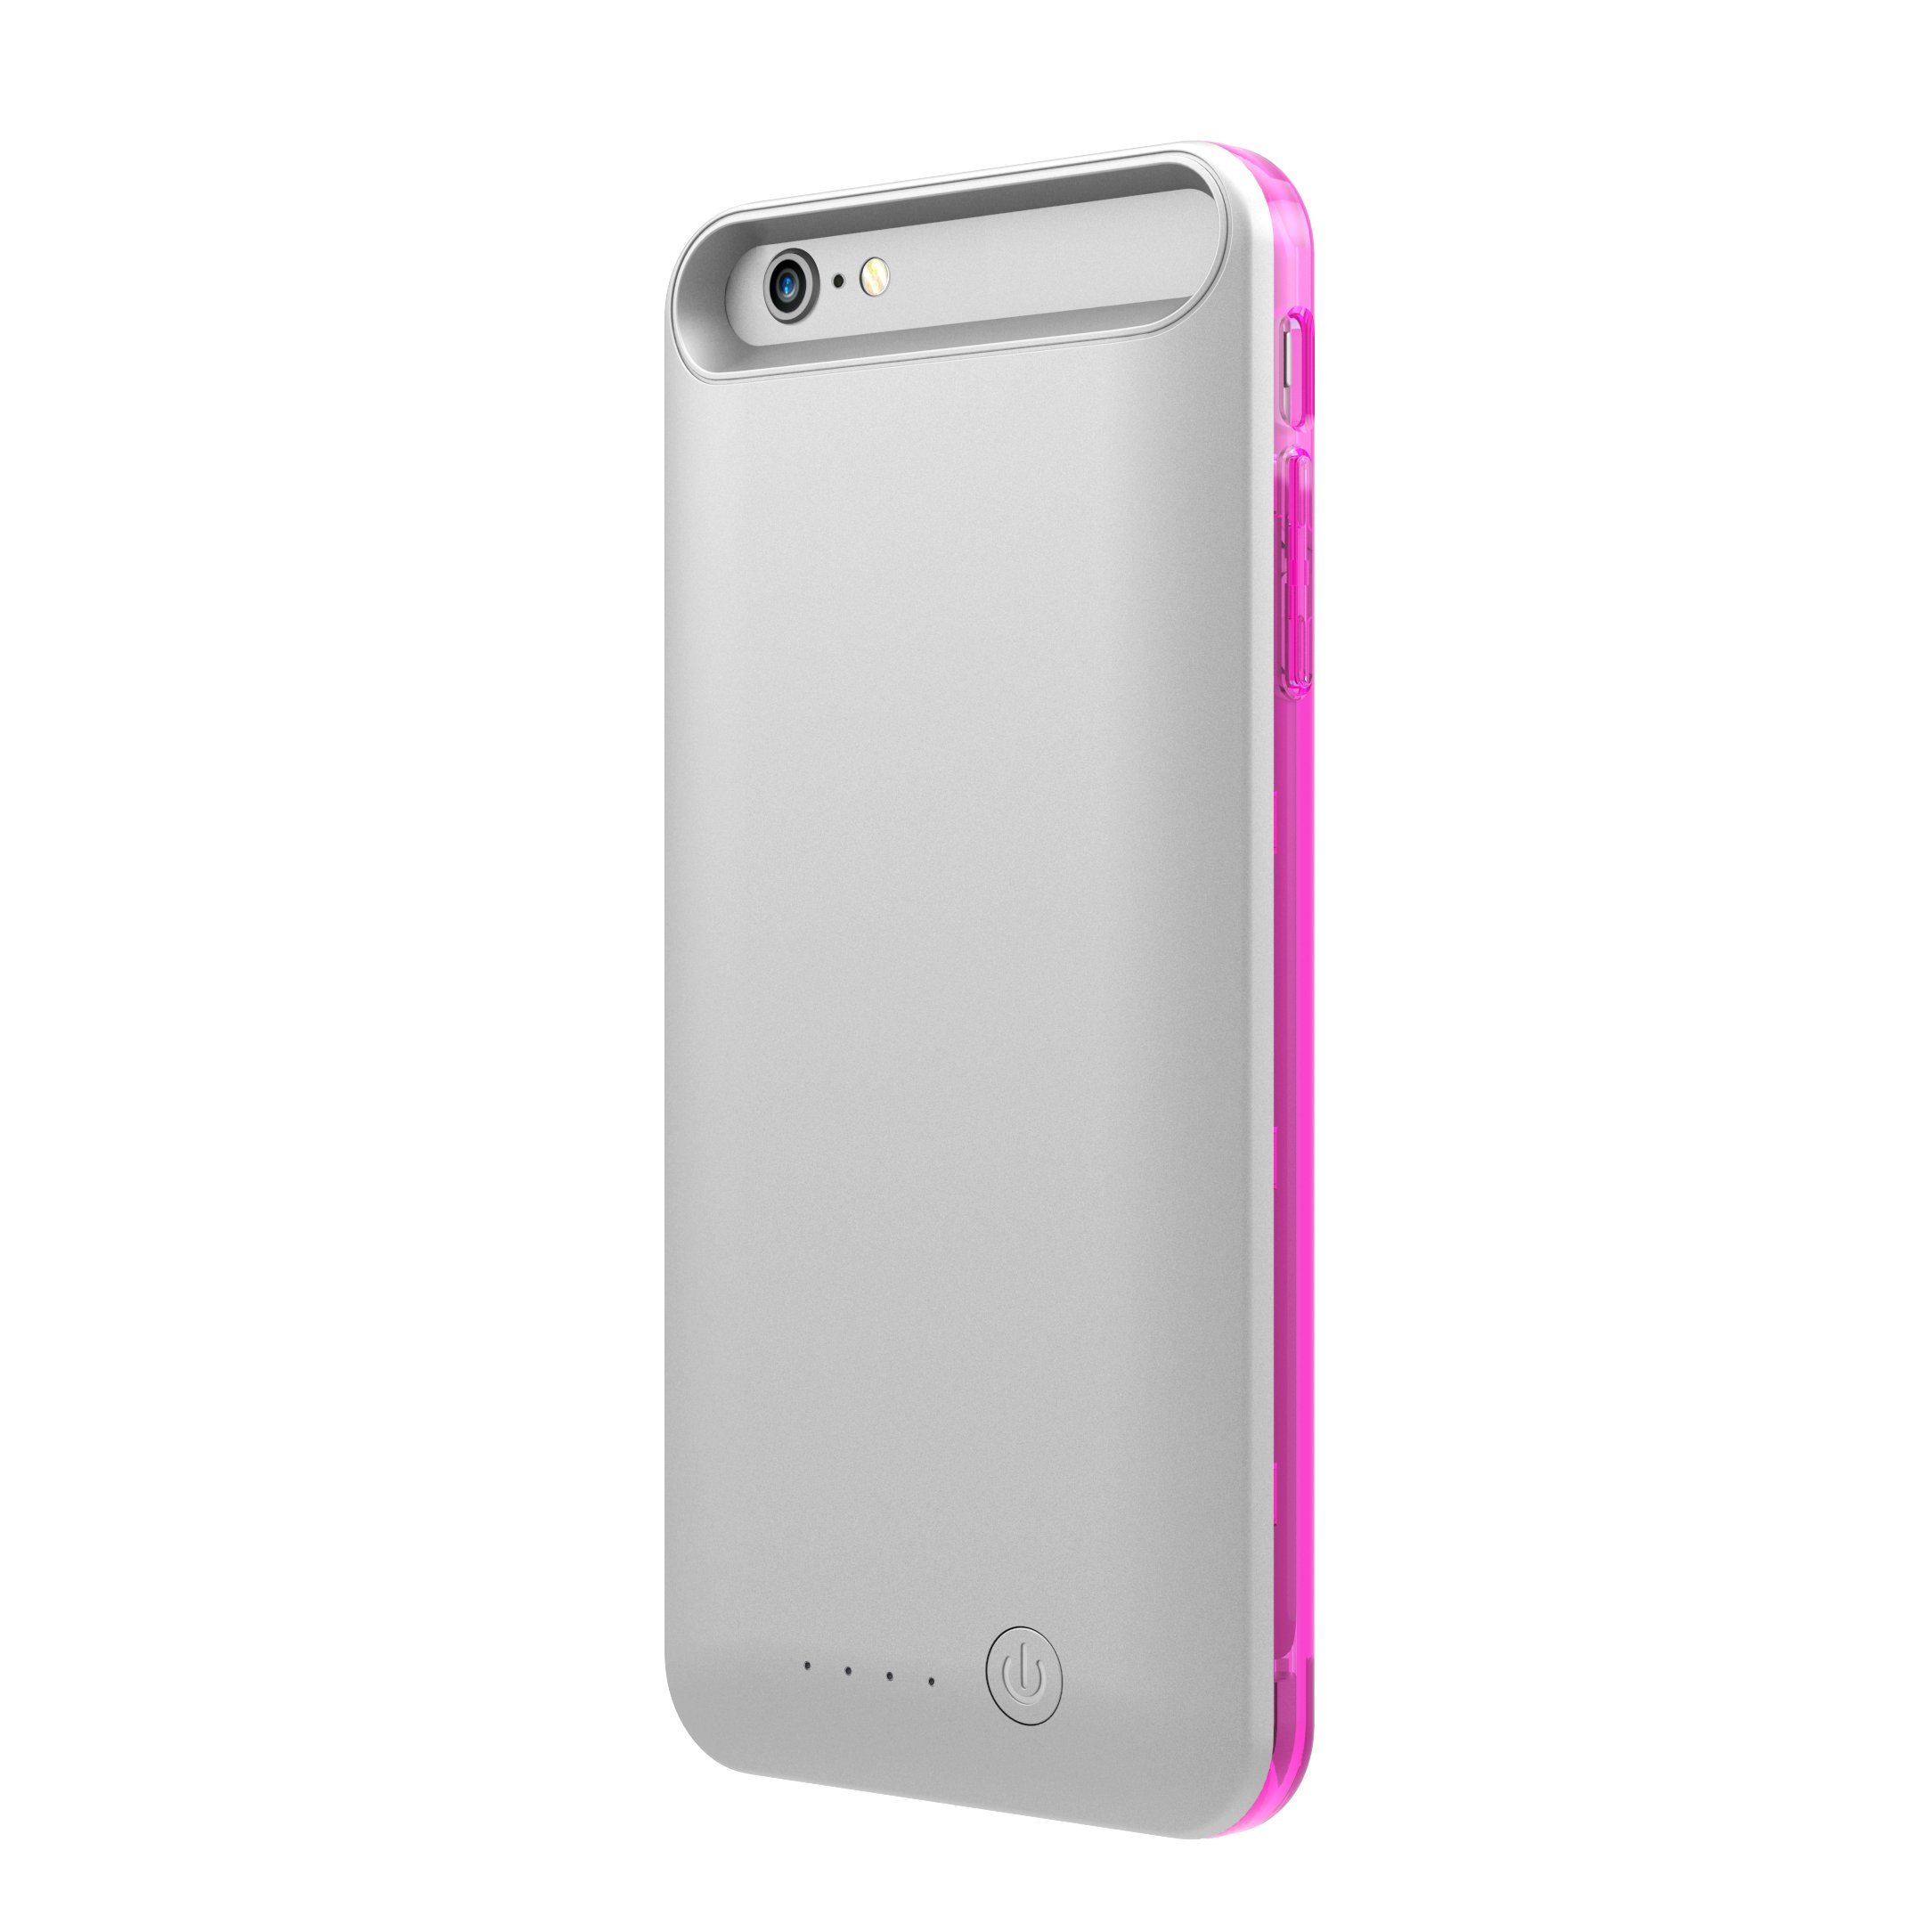 TAMO iPhone 6/6s Extended Battery Case, TAMO 2400 mAh dual-purposed Ultra-Slim Protective Extended Battery Case - Pink - Battery - Retail Packaging - Pink by TAMO (Image #4)